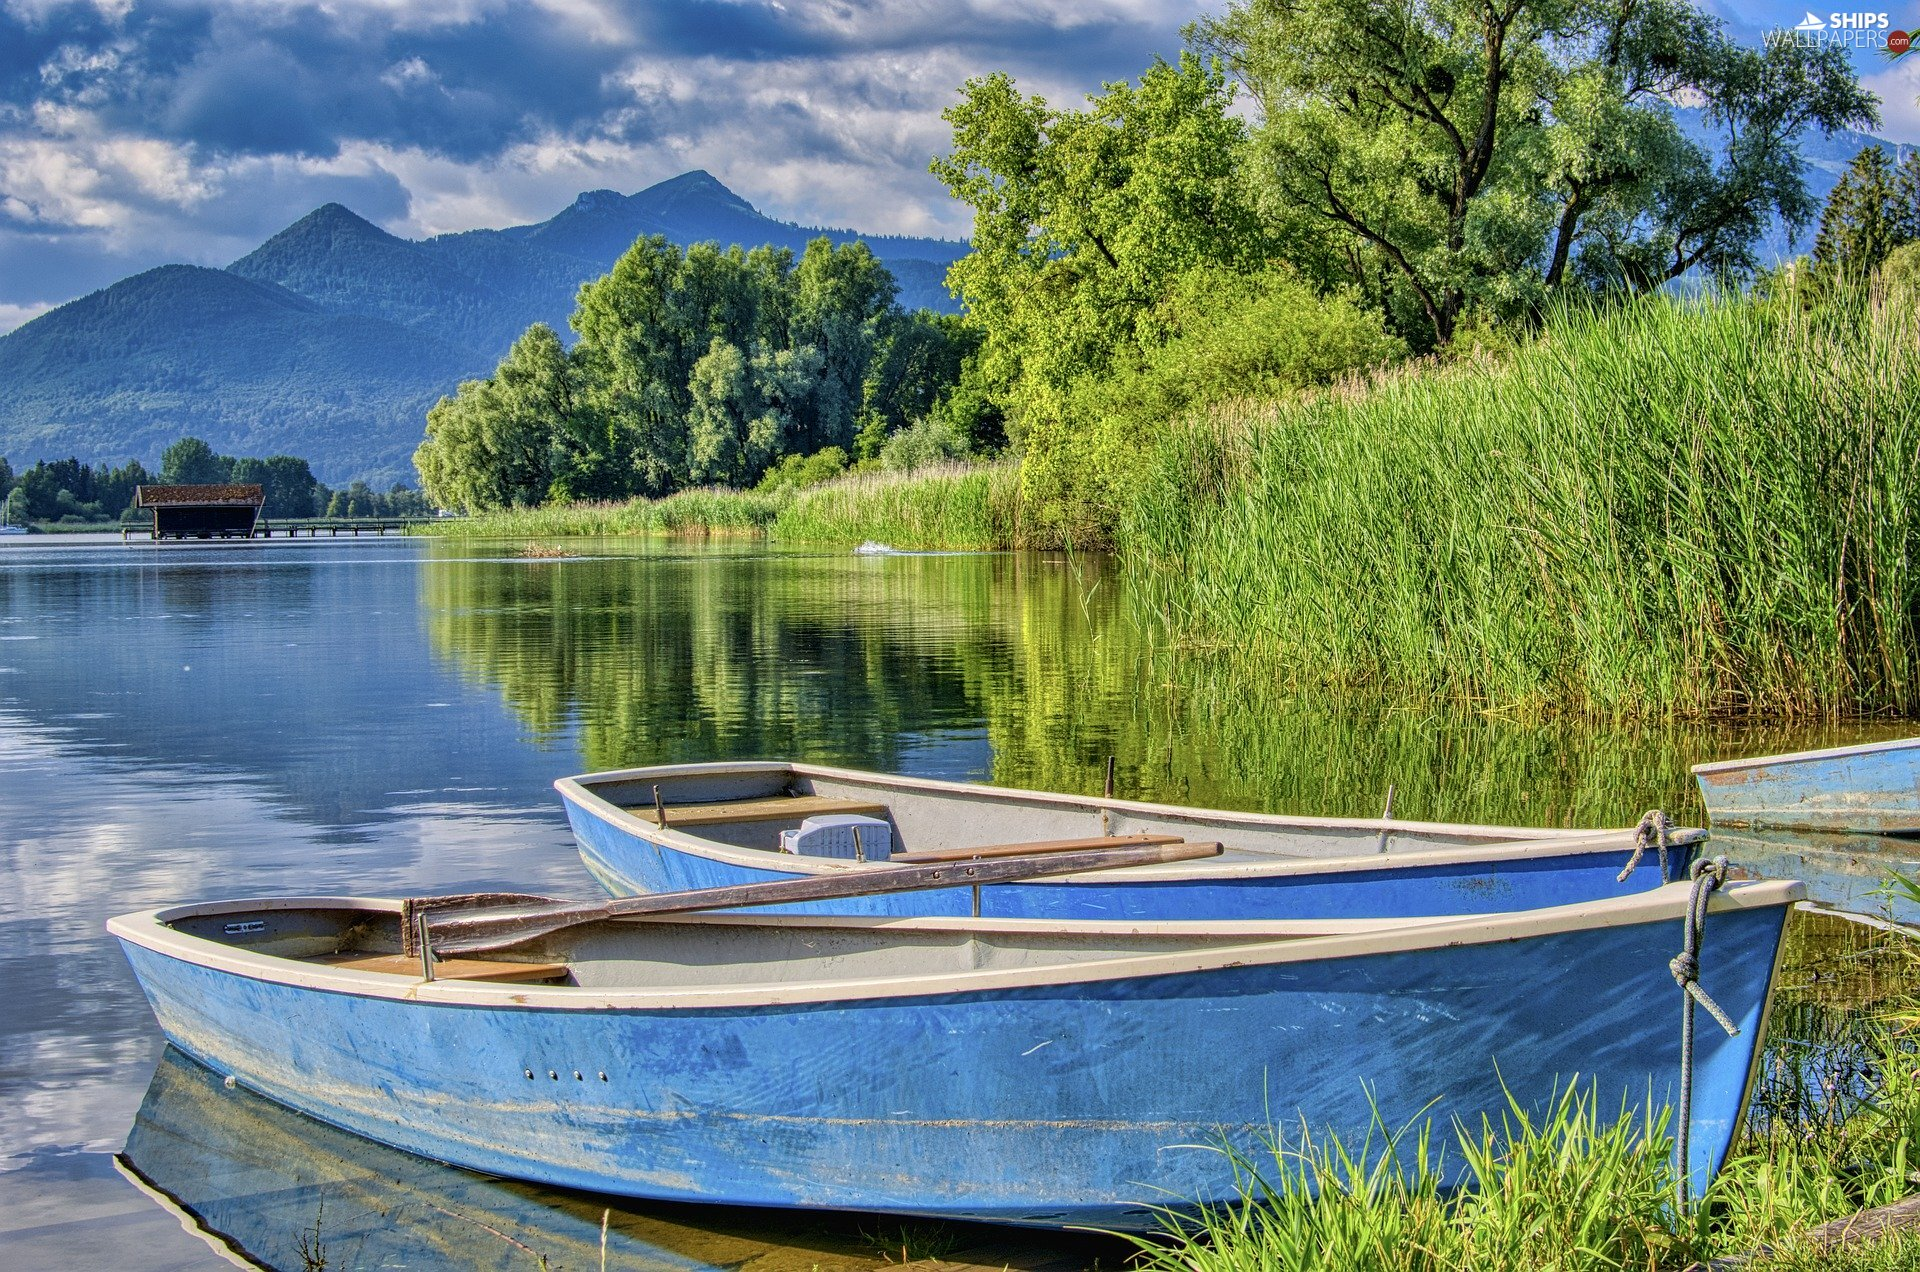 trees, lake, rushes, Mountains, viewes, boats